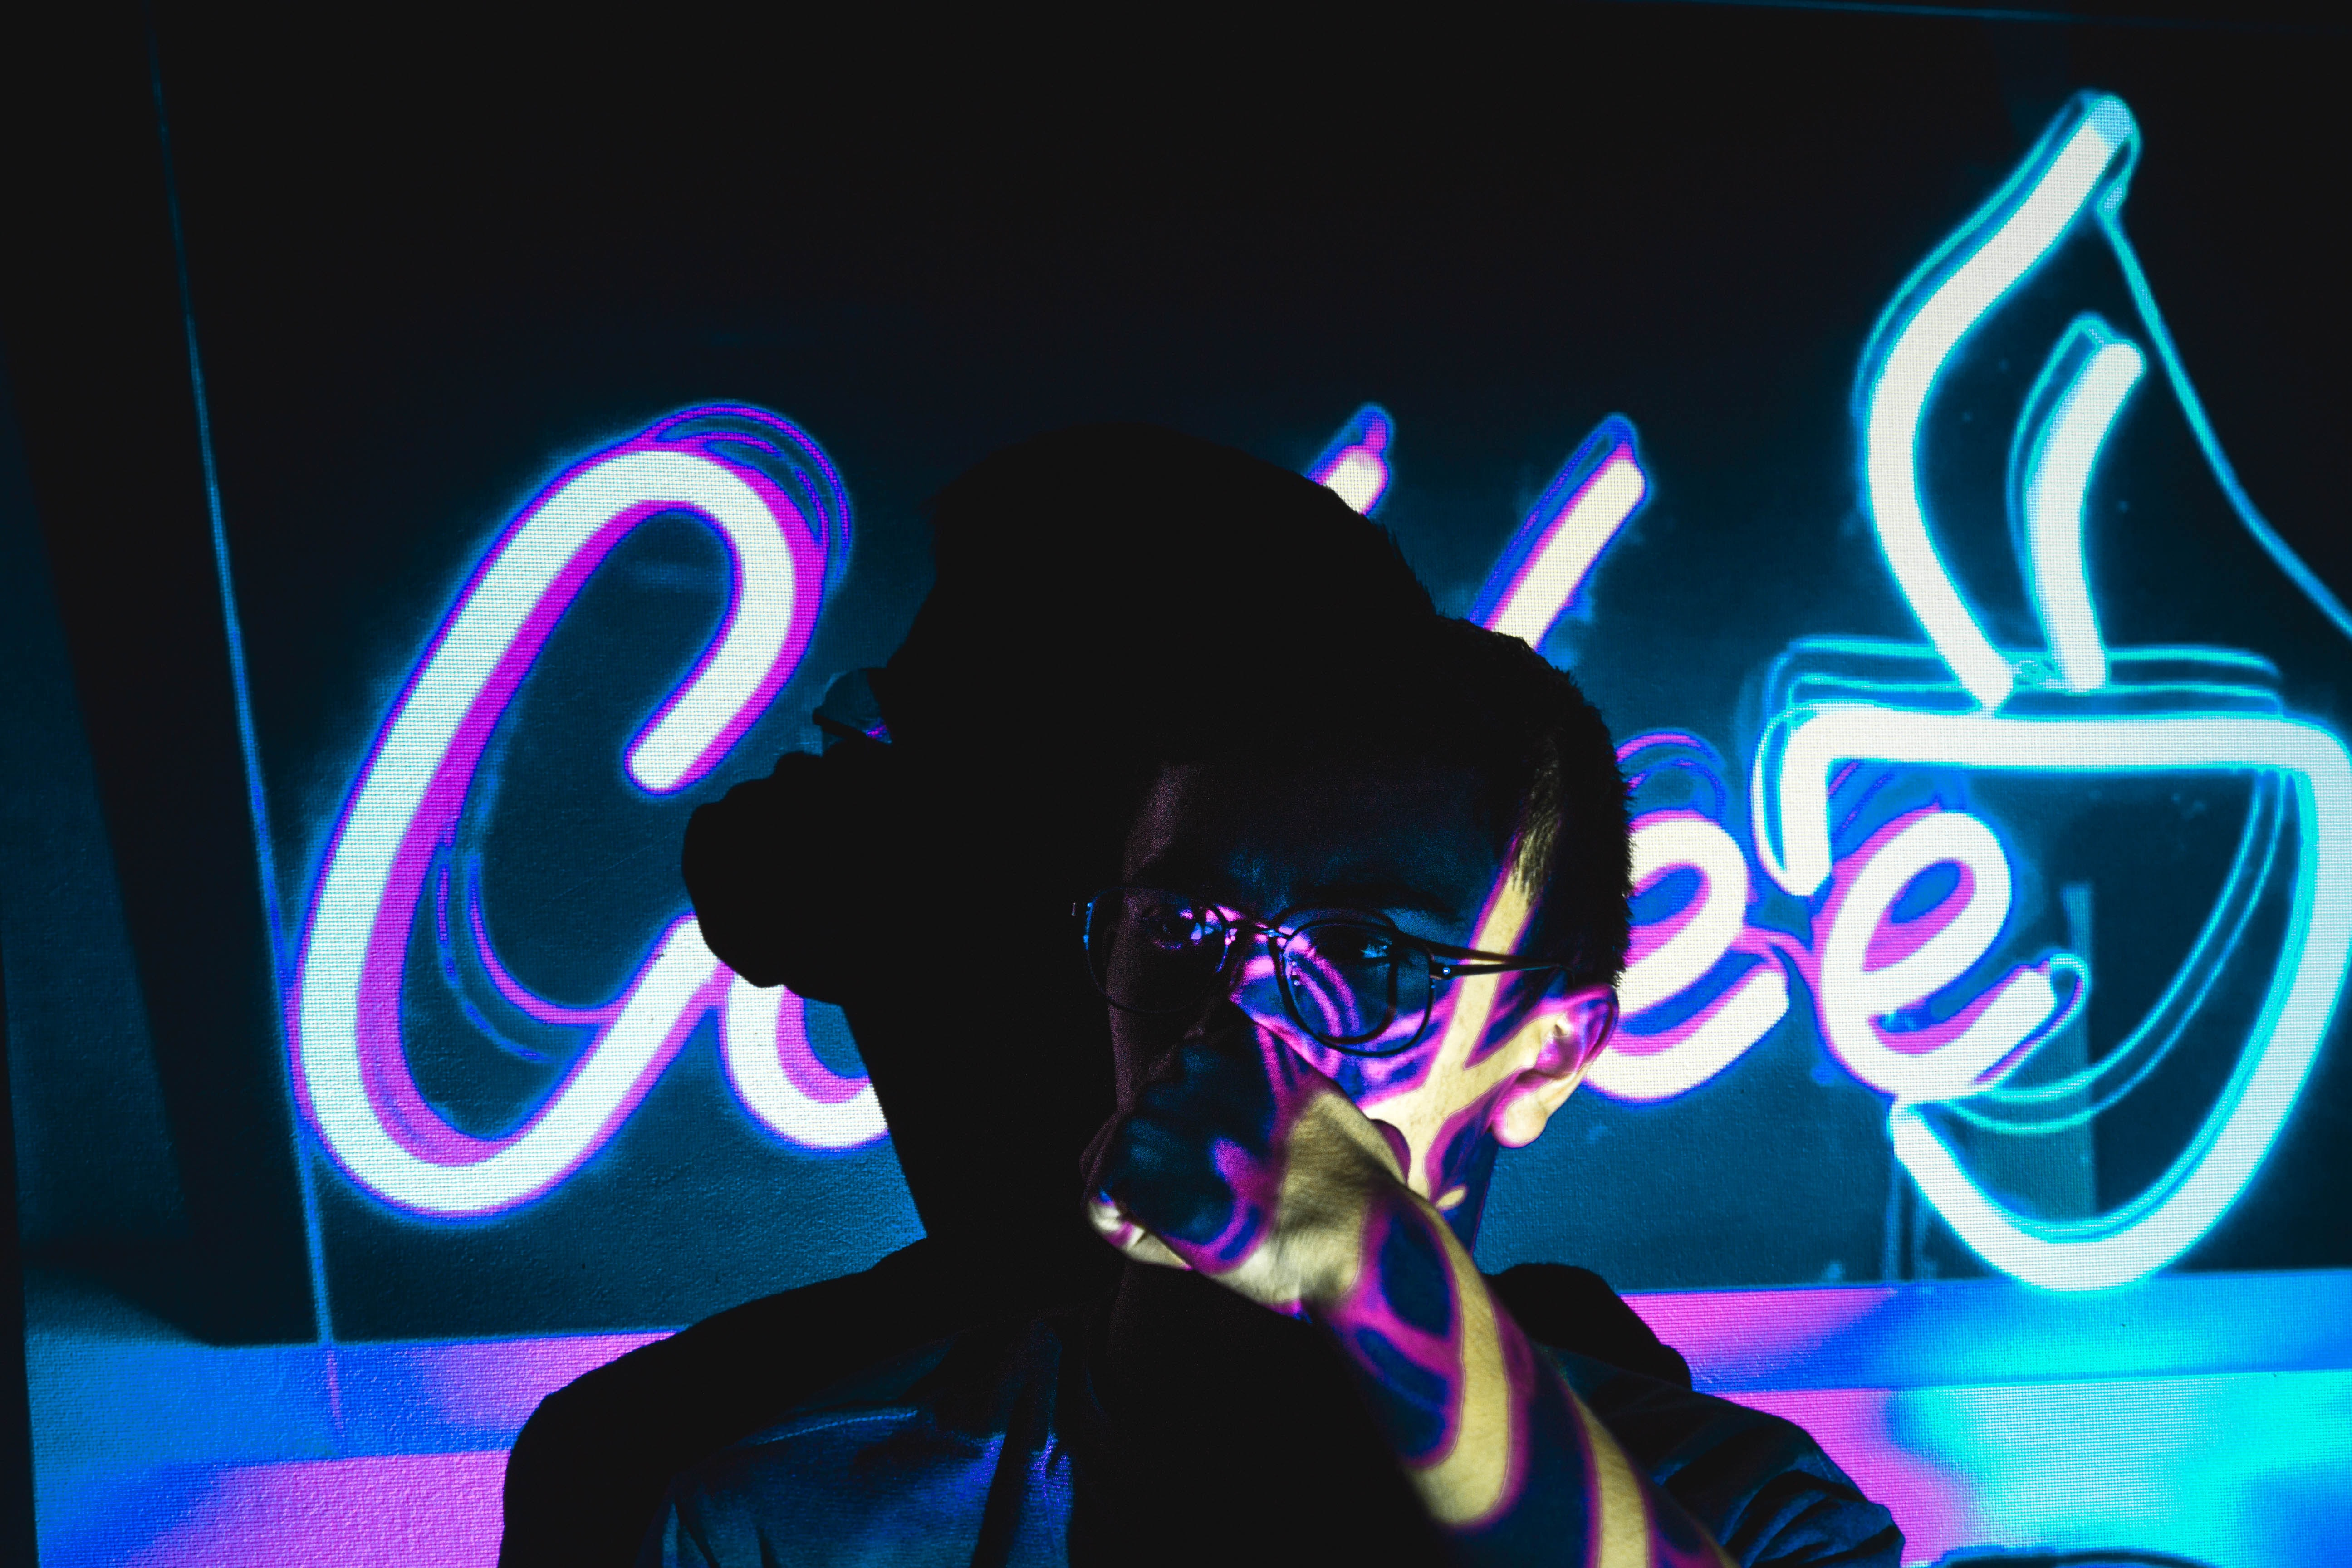 person wearing eyeglasses with shadow near neon light signage